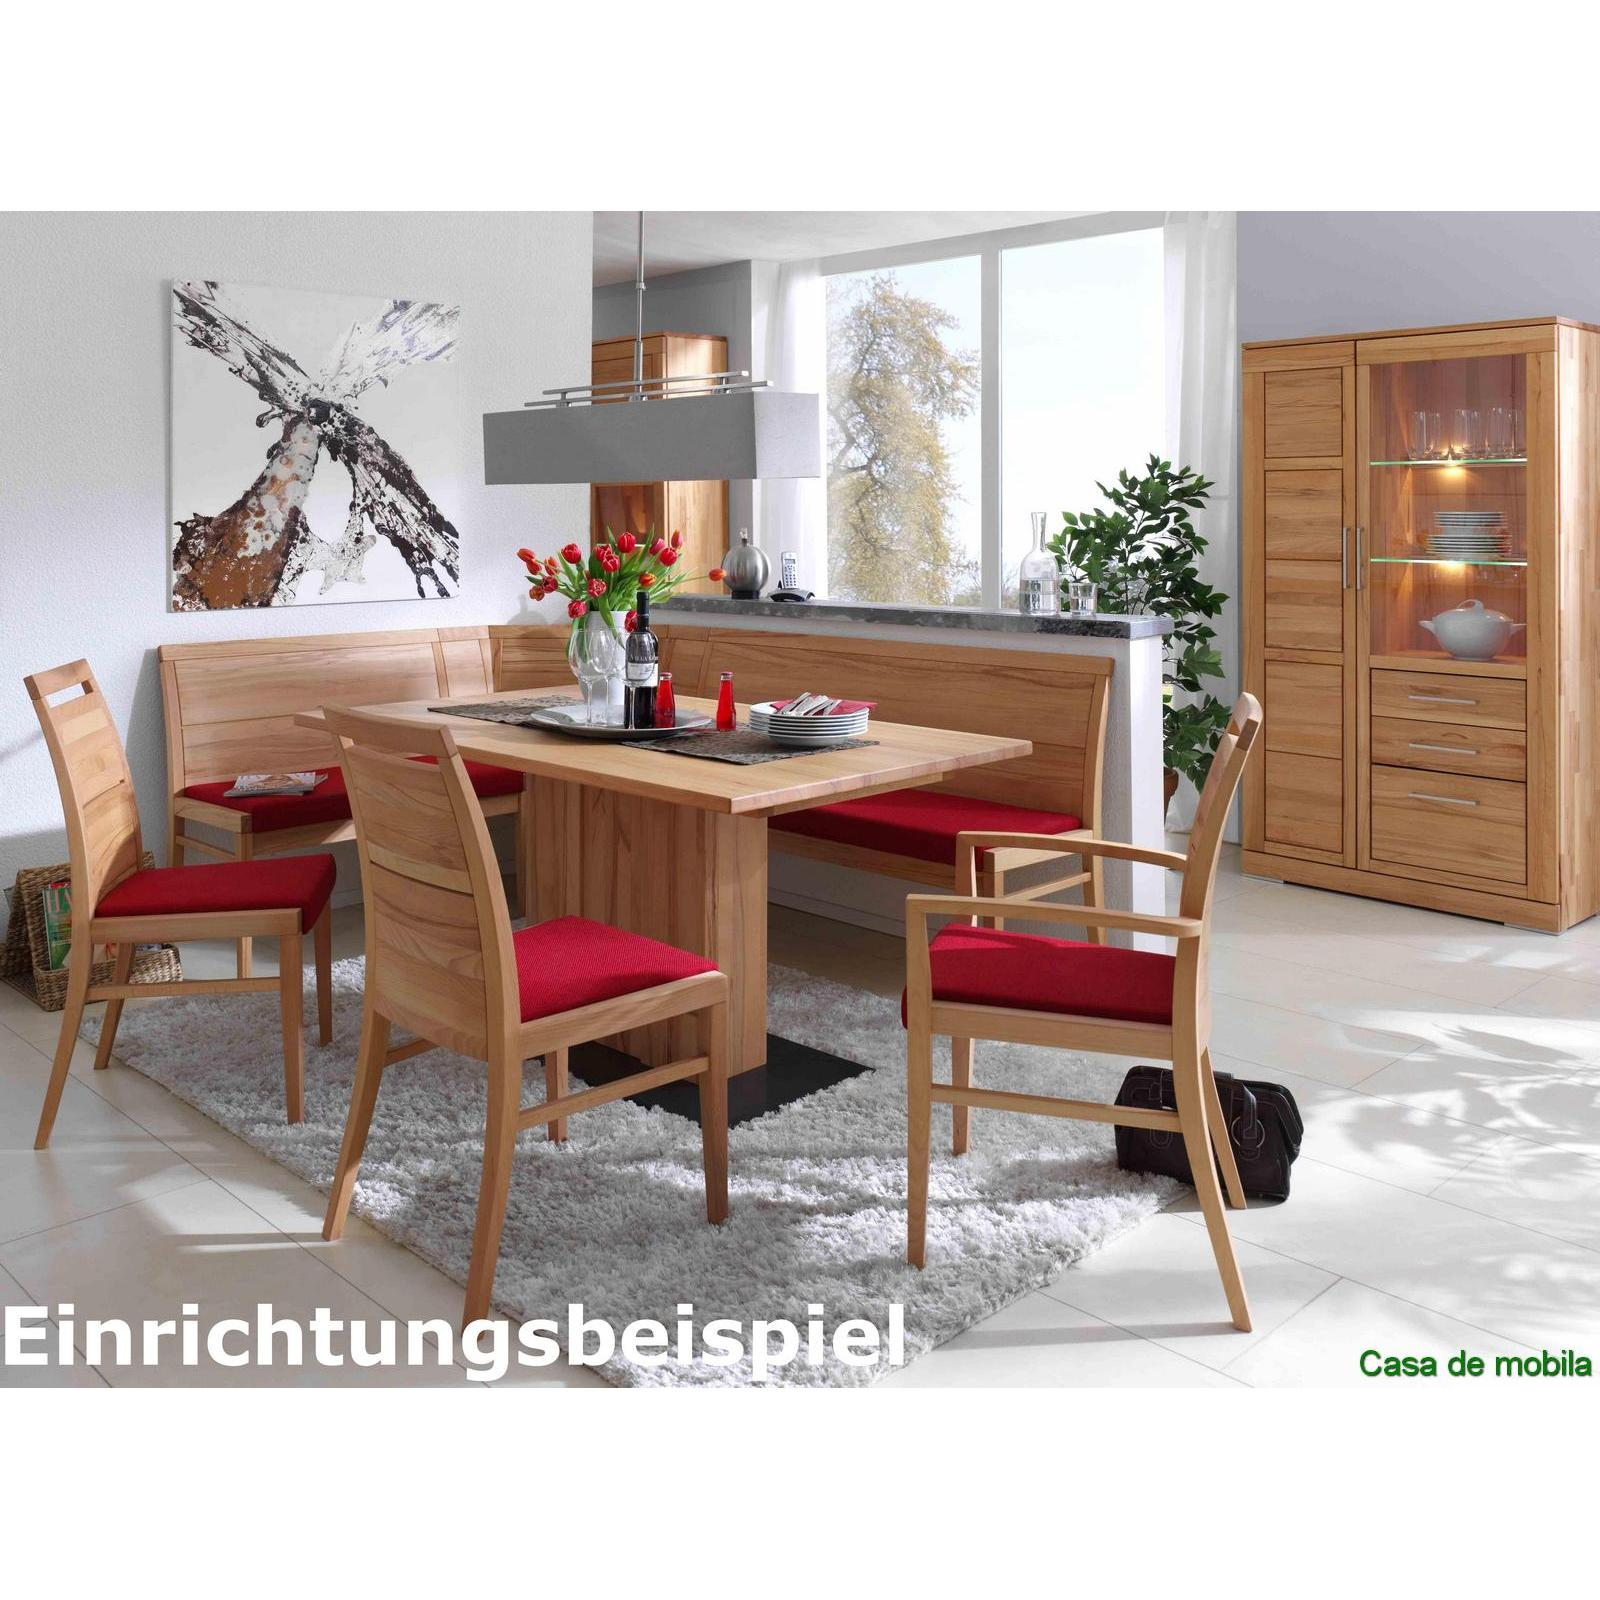 bank mit r ckenlehne k chenbank 190 cm kernbuche massiv. Black Bedroom Furniture Sets. Home Design Ideas